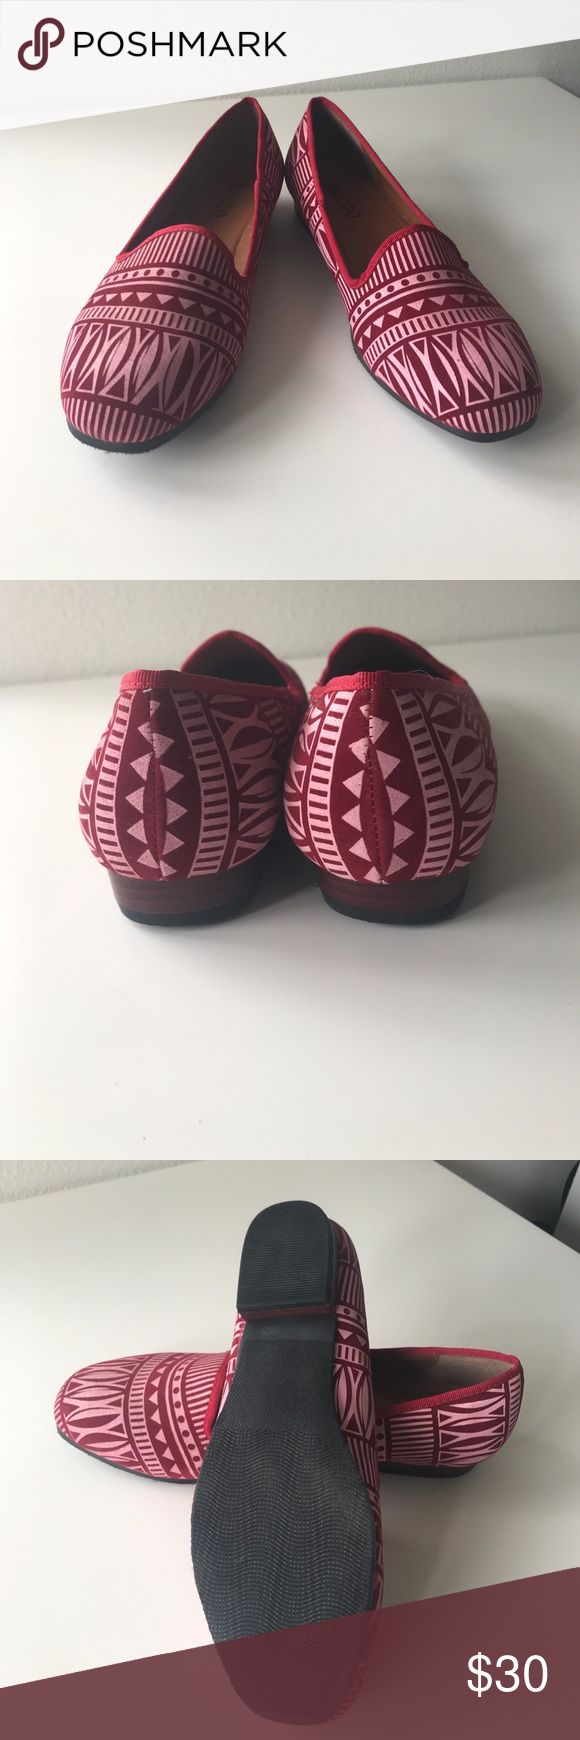 Red Aztec flats PRICE FIRM UNLESS Bundled. 10% off bundles. In like new condition. Red Aztec print. Find this at Nordstrom. 1010 Bucco Shoes Flats & Loafers